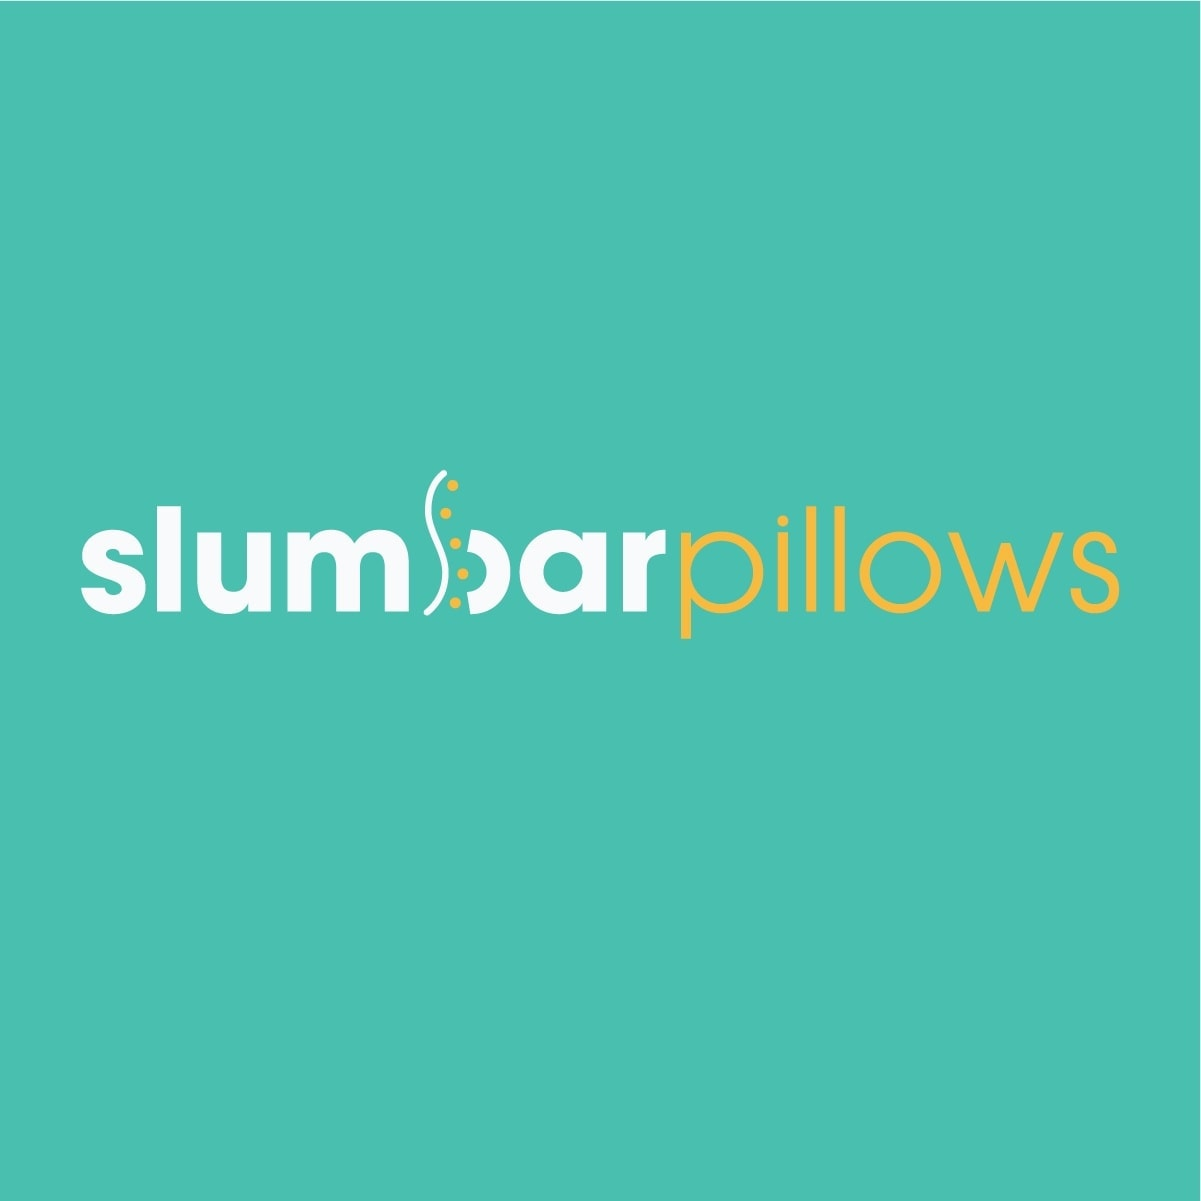 slumbar-pillows-logo |American Pregnancy Association